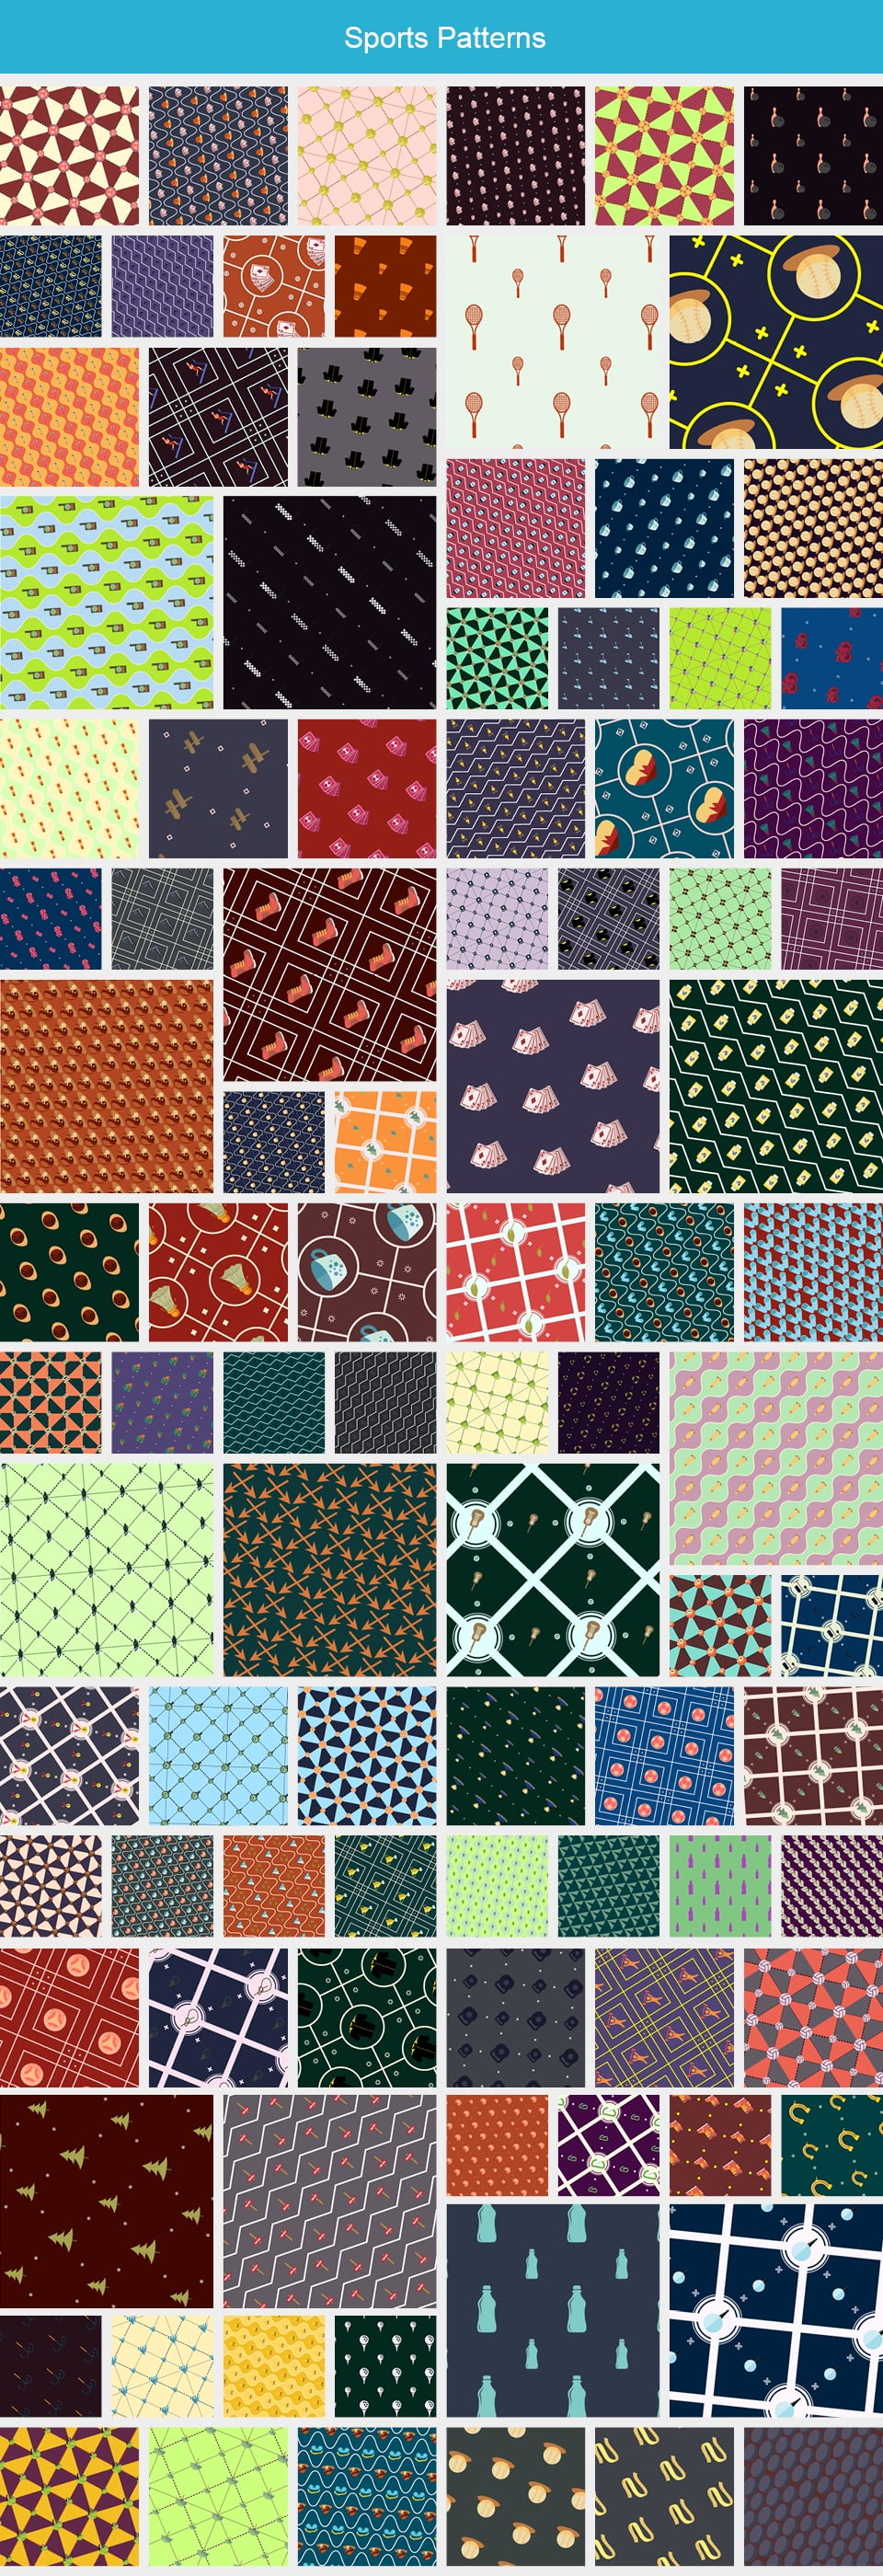 Modern Pattern Designs - Mega Bundle with 2000 Patterns - Large Preview Sports